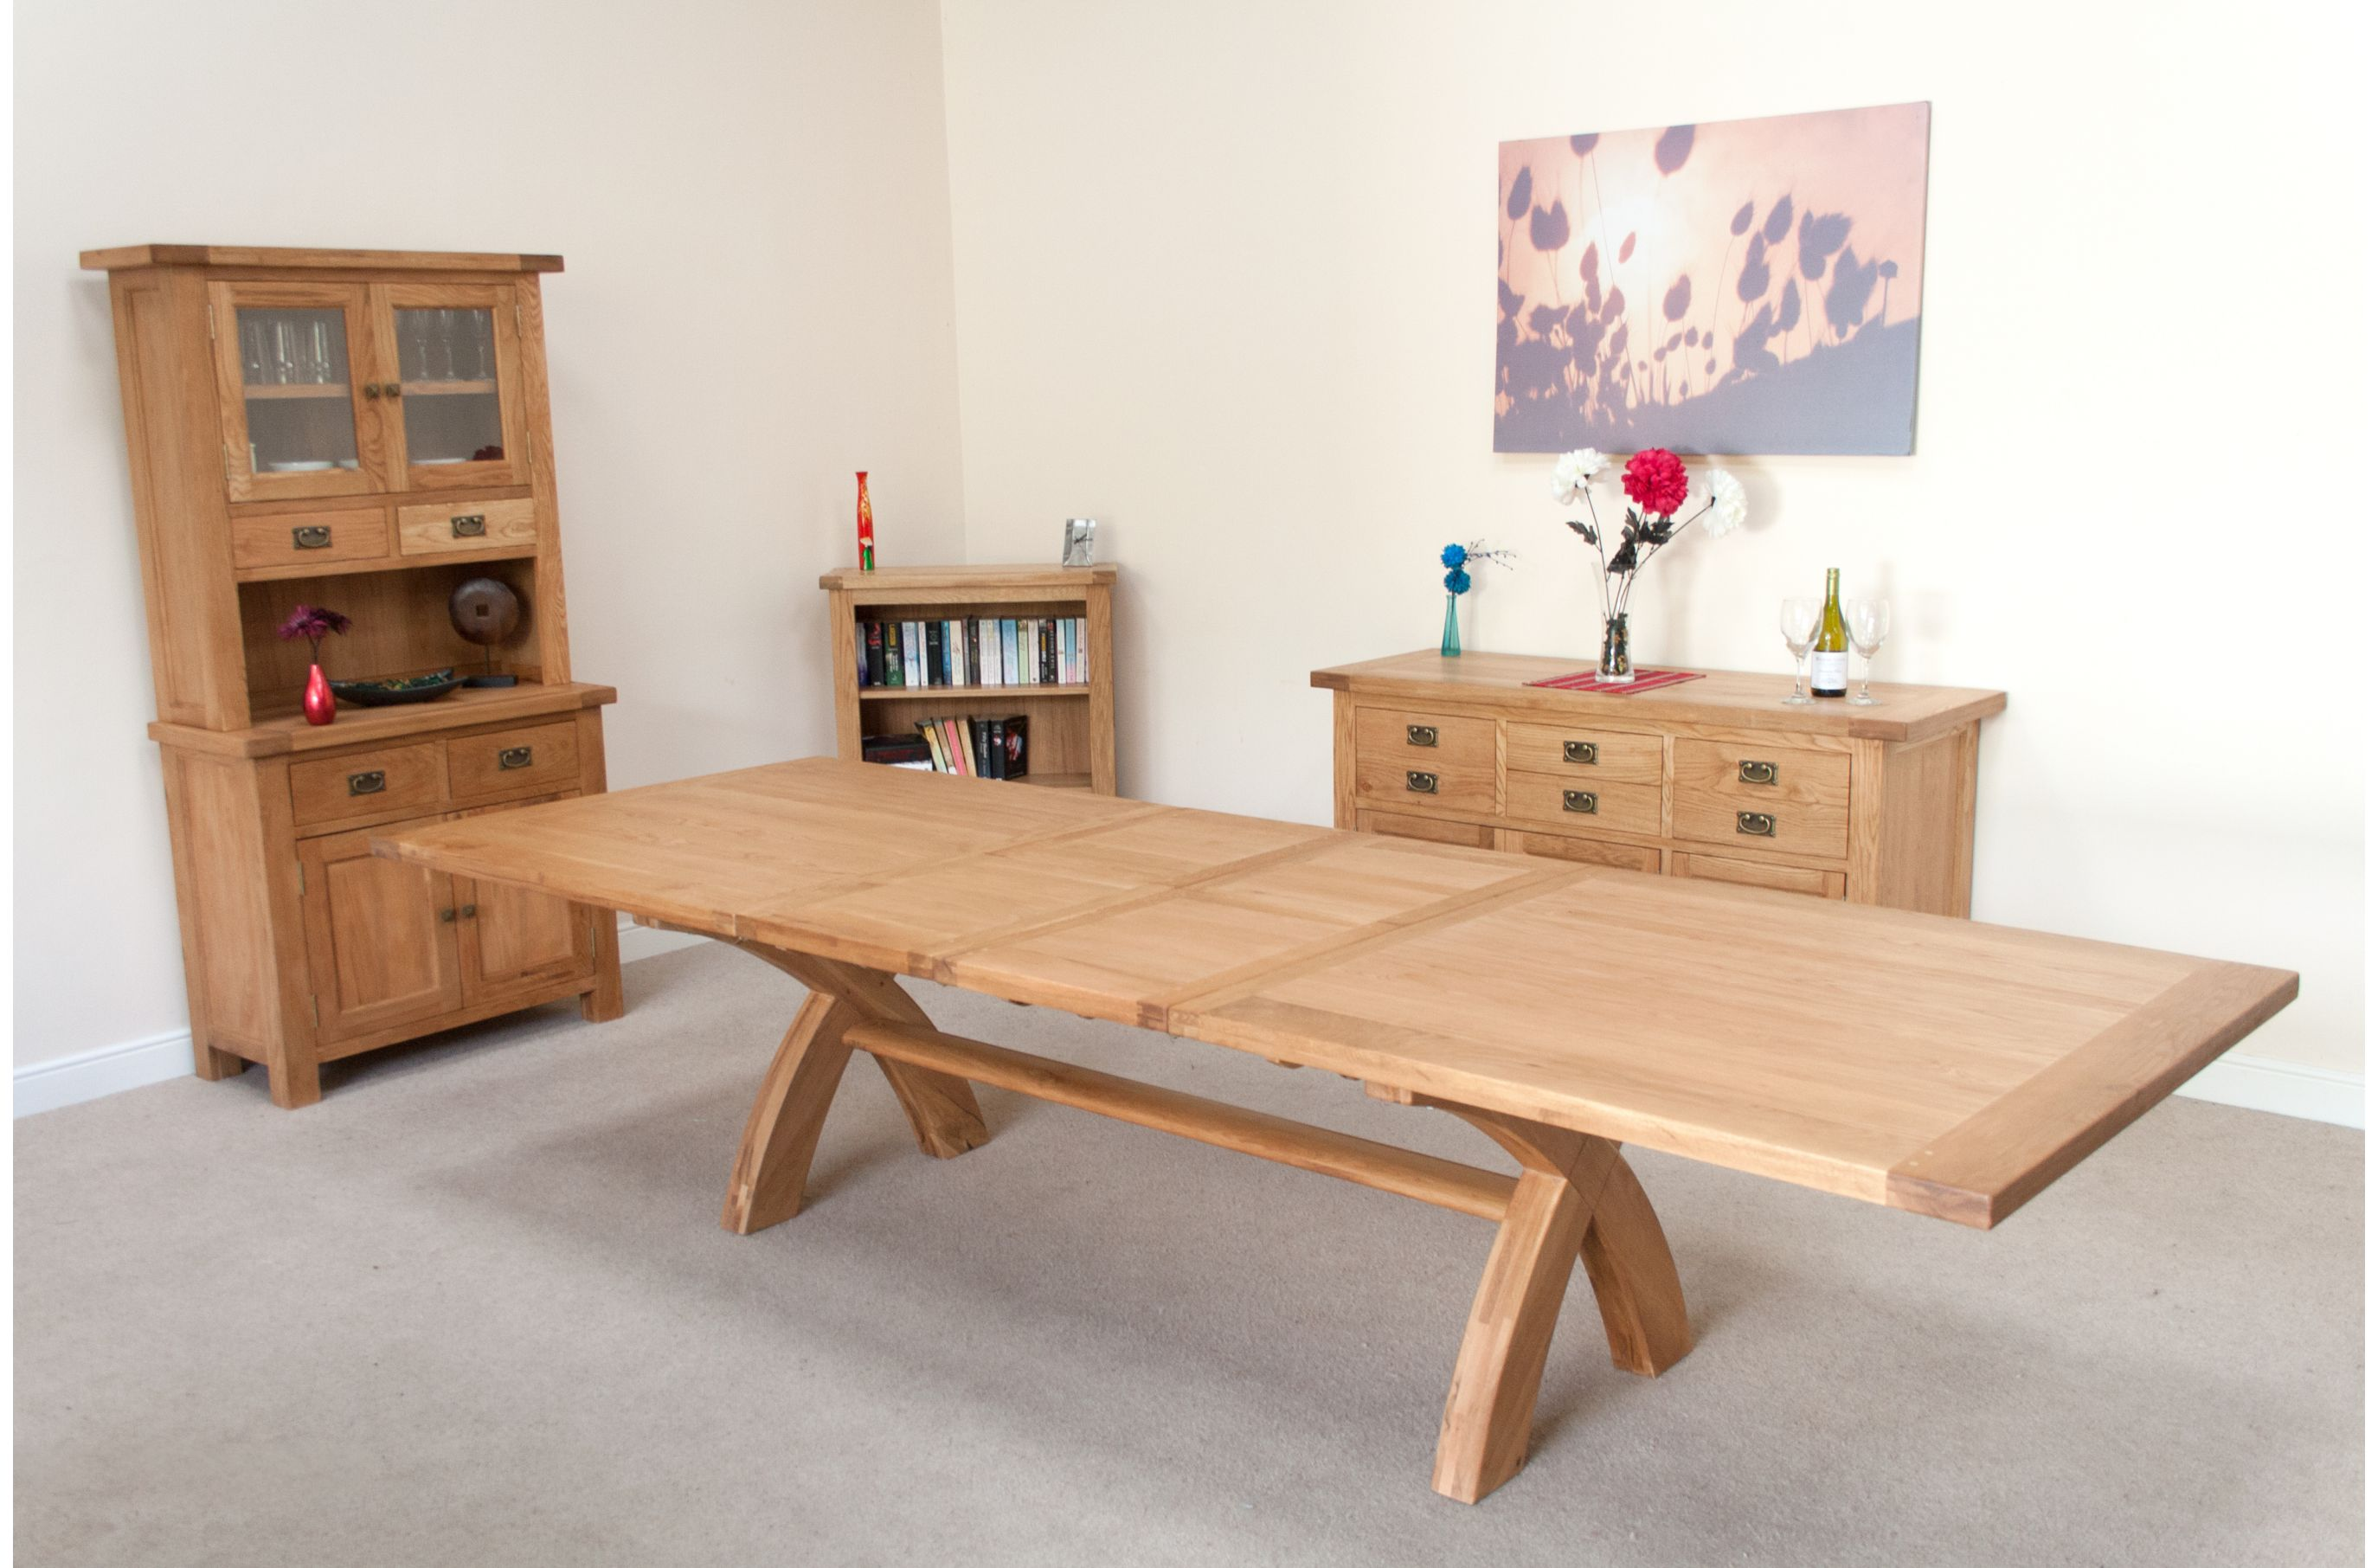 Extending Oak Table Large Dining Table Seats 10 12 14 16 People Huge Big Tables